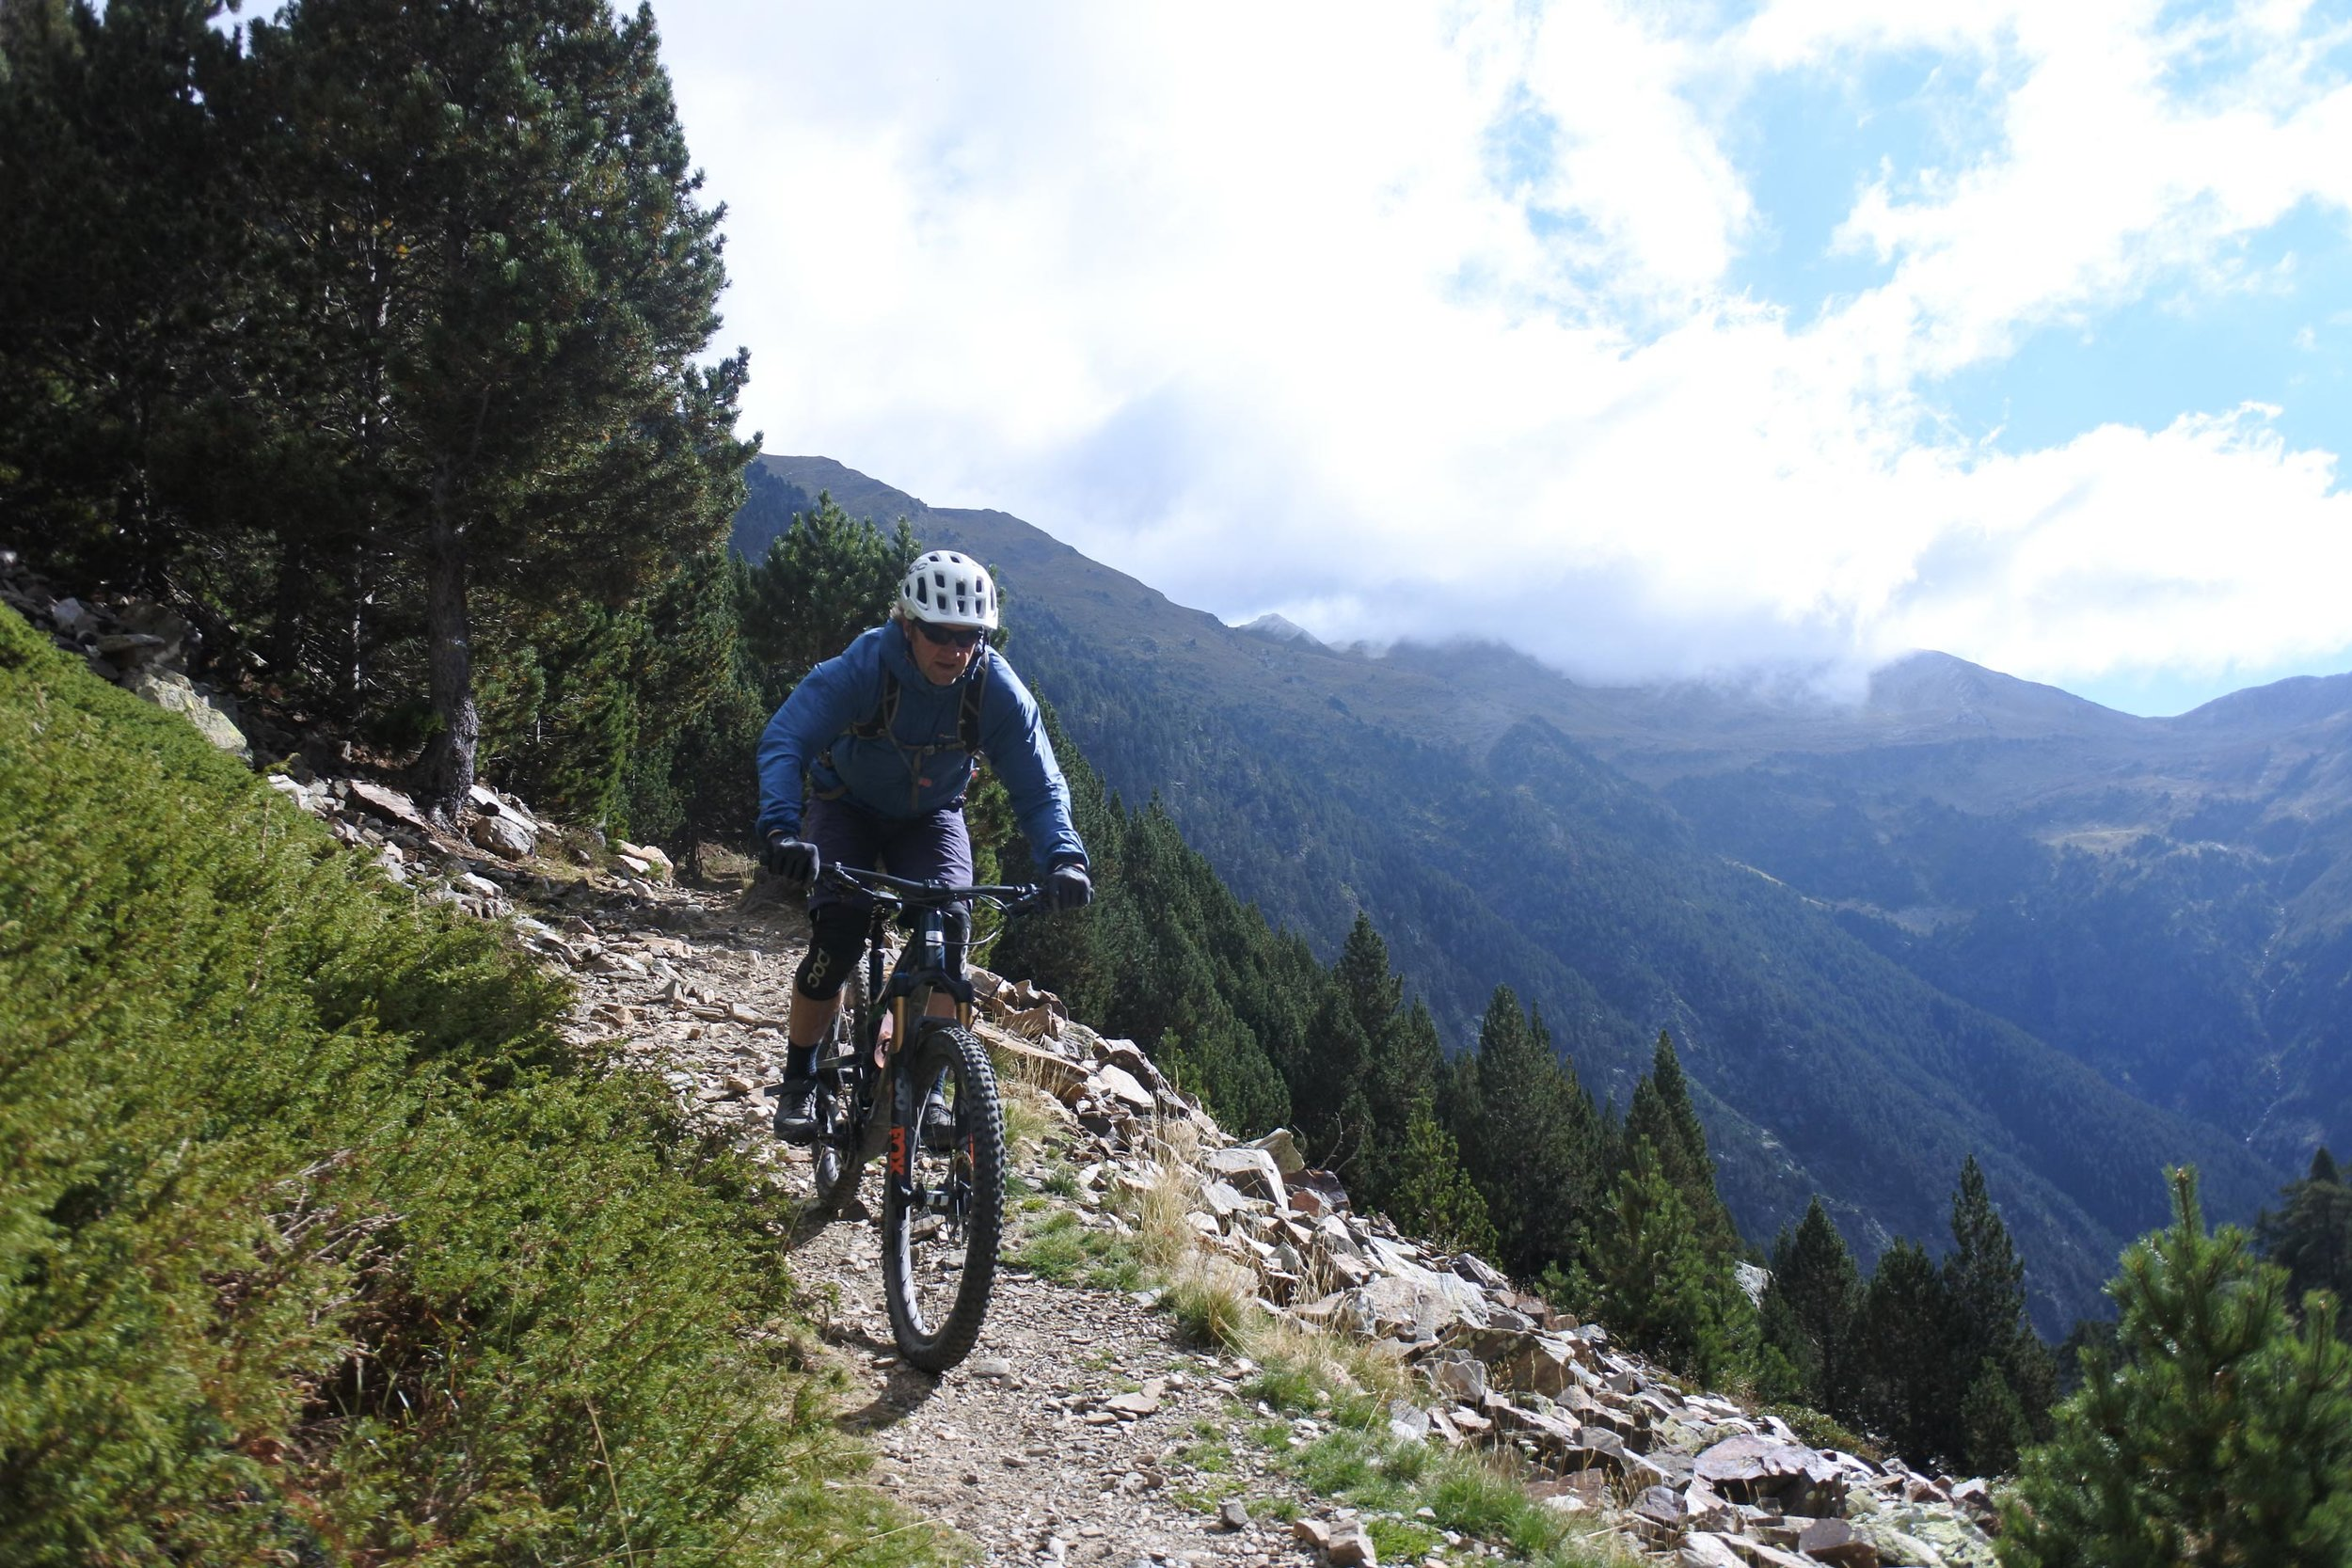 Mark from Scotland enjoying the Alpine trails near the French border